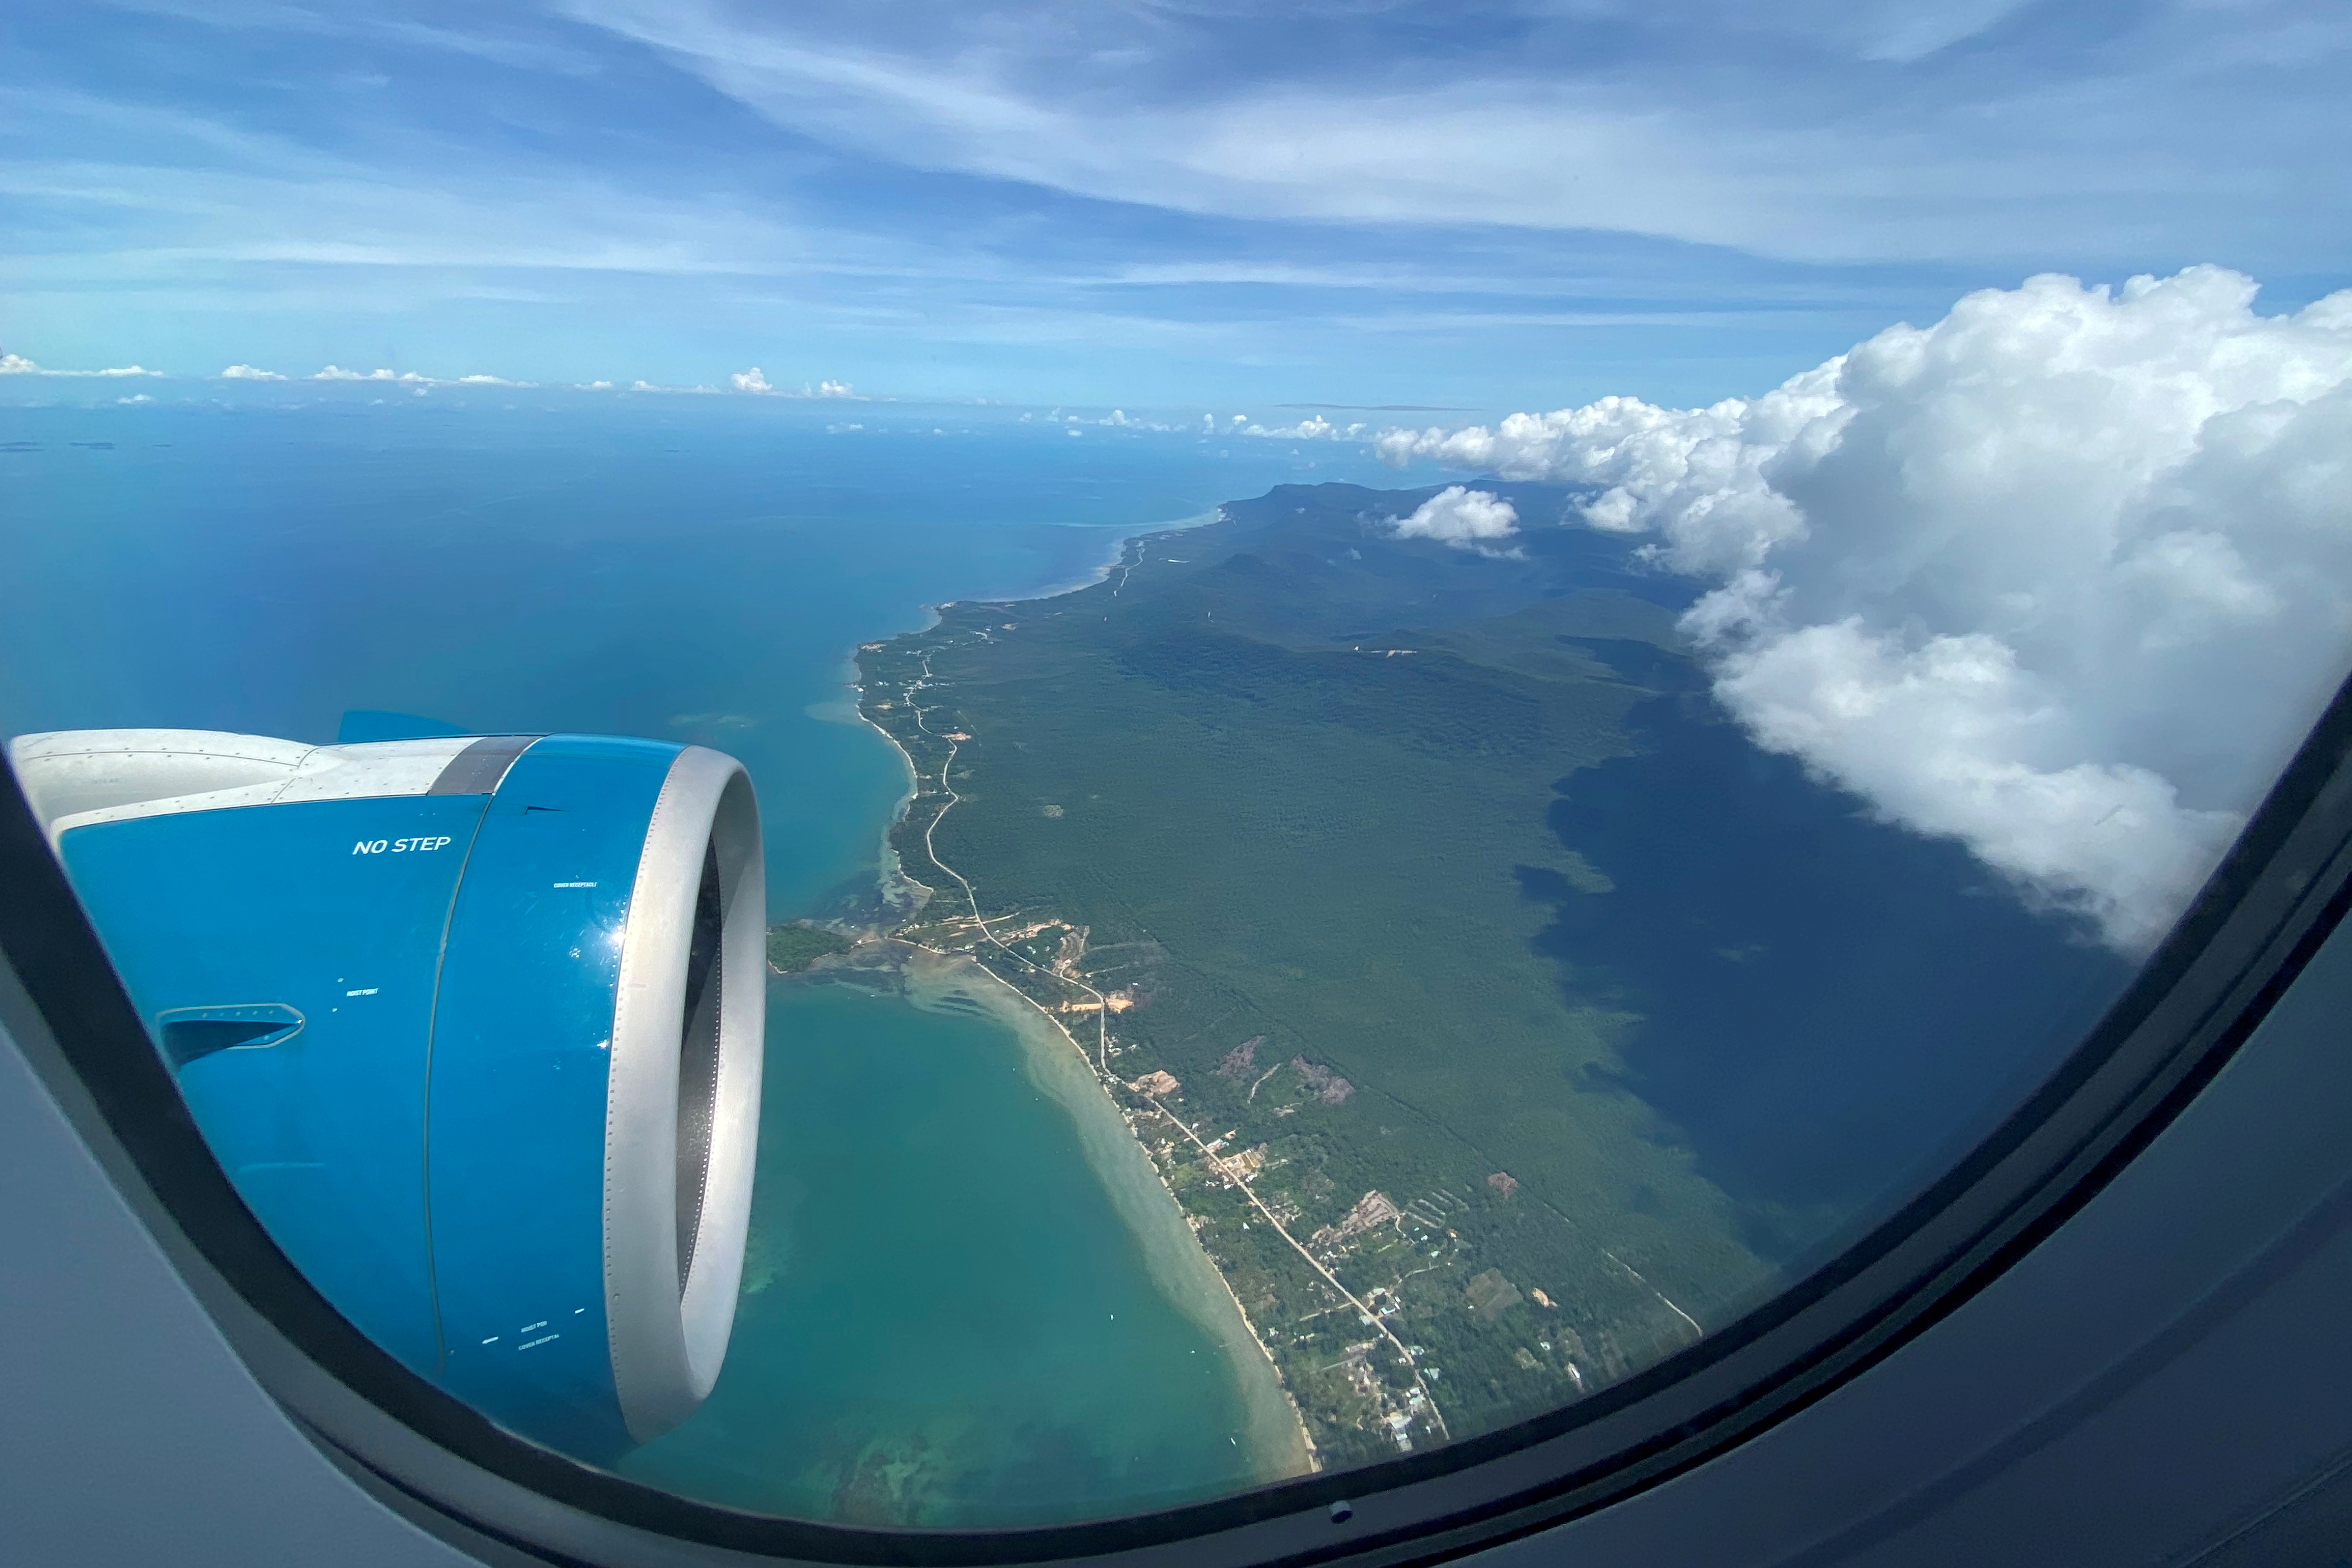 Phu Quoc resort island is seen via the window of an airplane after the Vietnamese government eased the lockdown following the coronavirus disease (COVID-19) outbreak, Phu Quoc Island, Vietnam May 8, 2020. Picture taken May 8, 2020. REUTERS/James Pearson